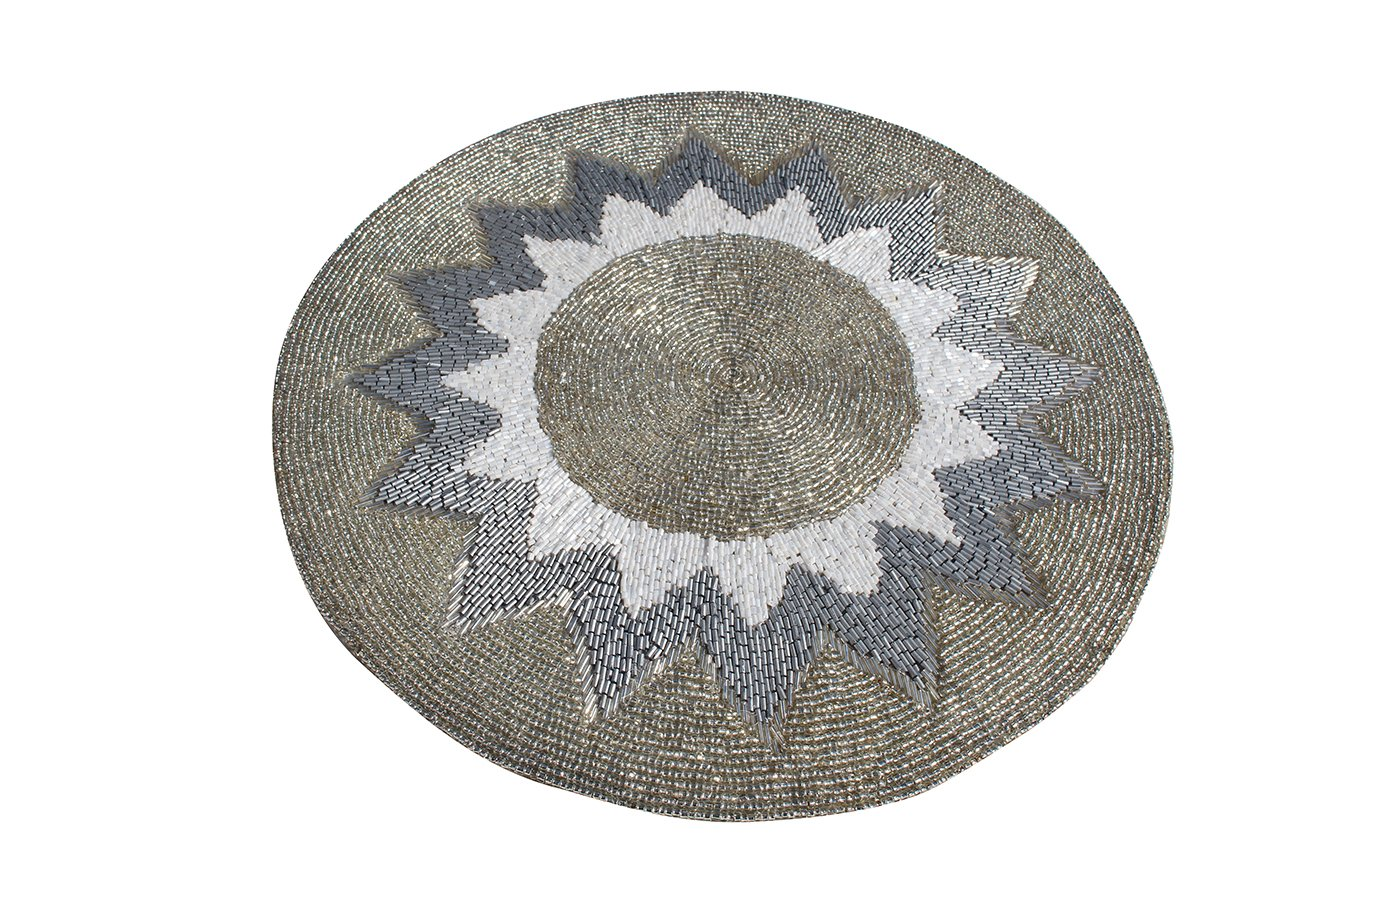 Glass Beaded Placemats Silver Sunflower Design Handcrafted Tabletop Decor Set of 6